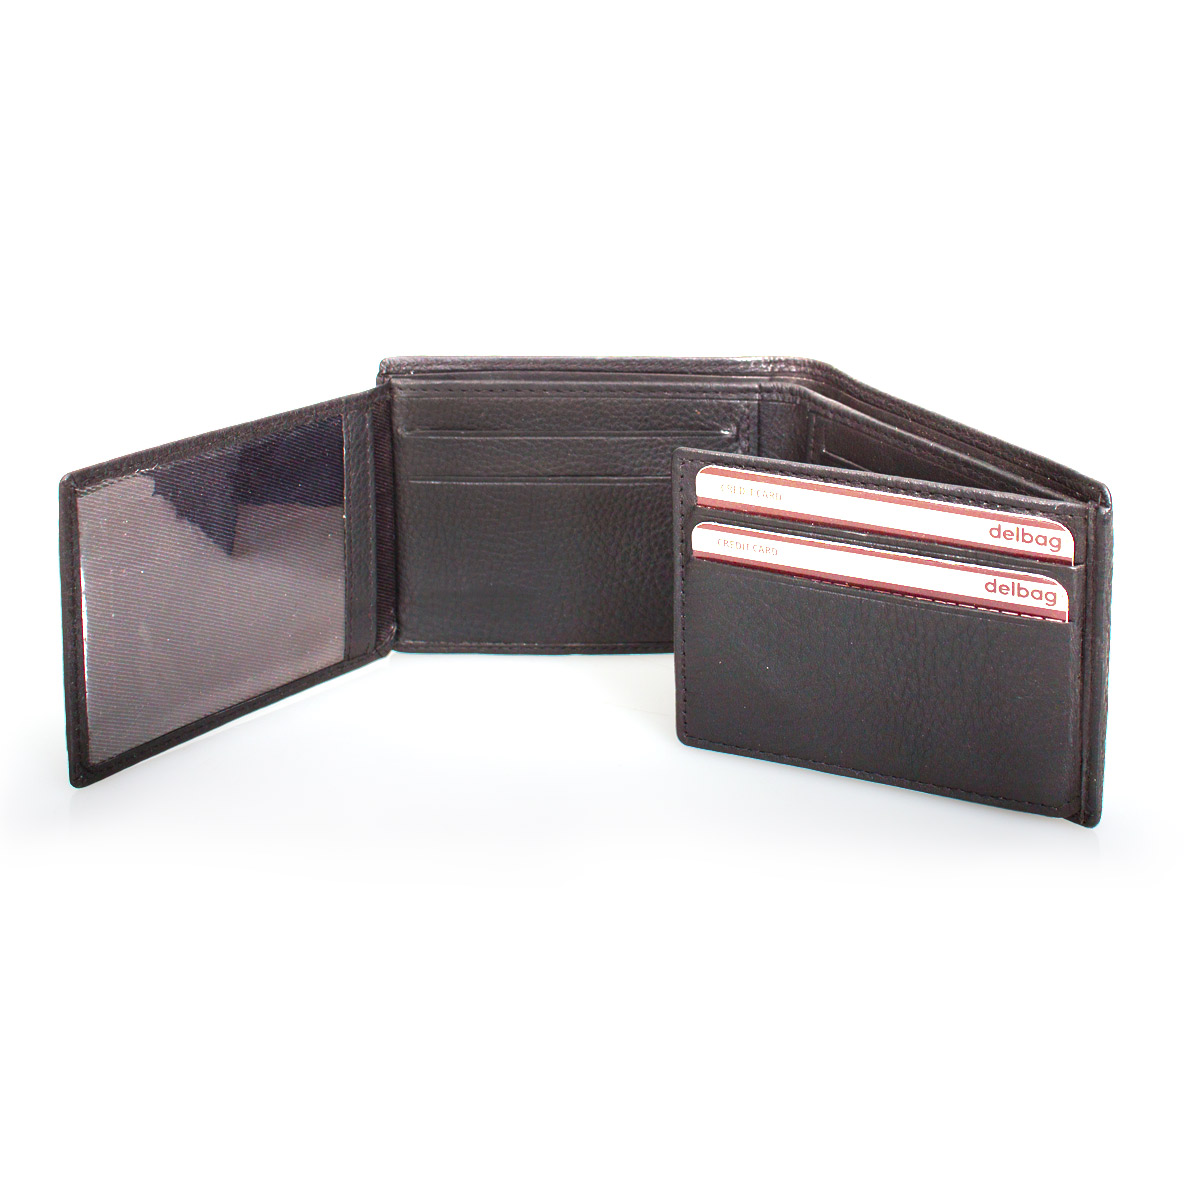 Delbag Card Holder Wallet BROWN – image 2